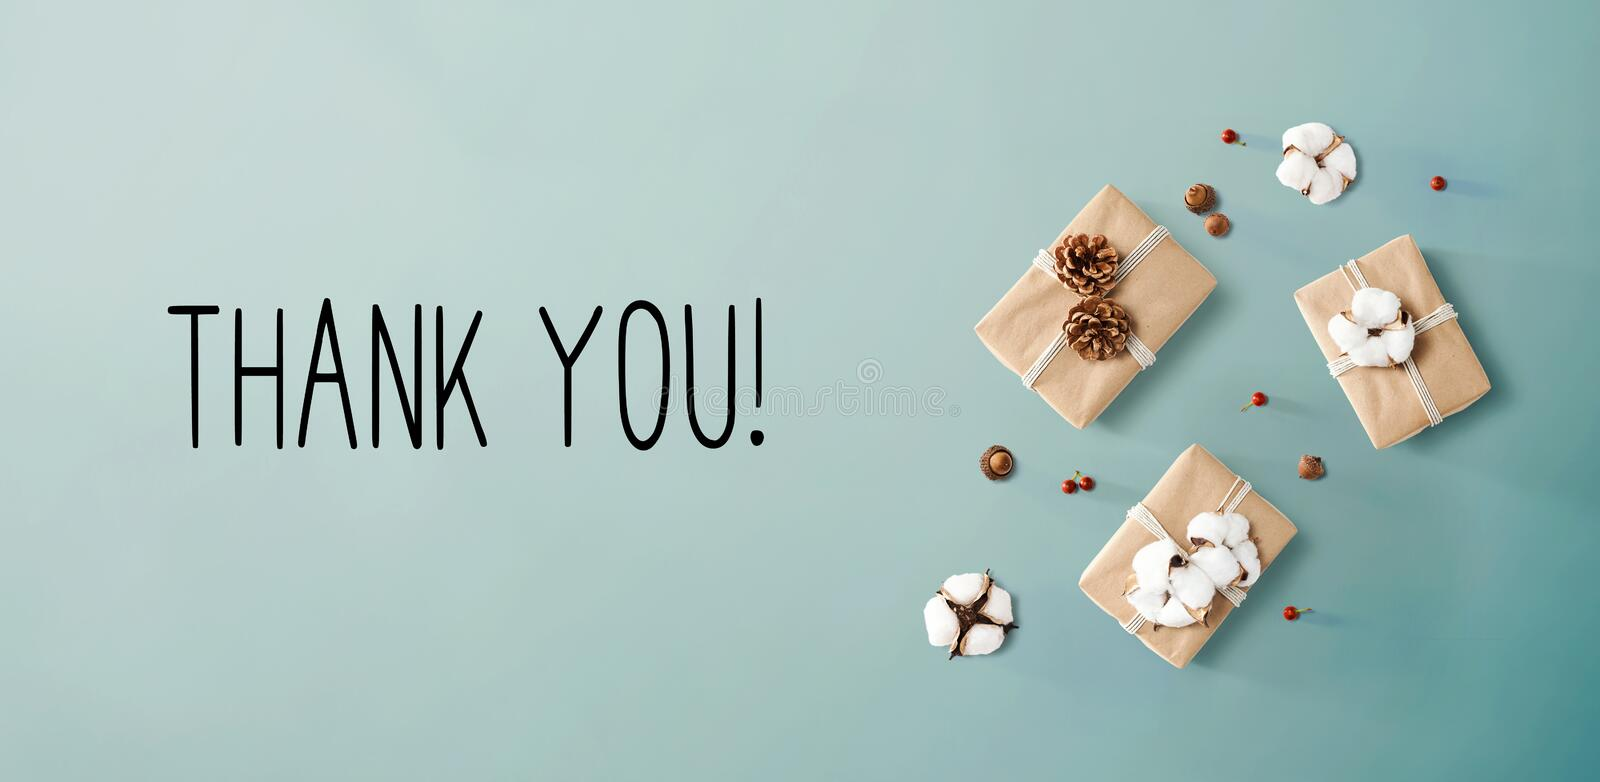 Thank you message with gift boxes with cottons stock image